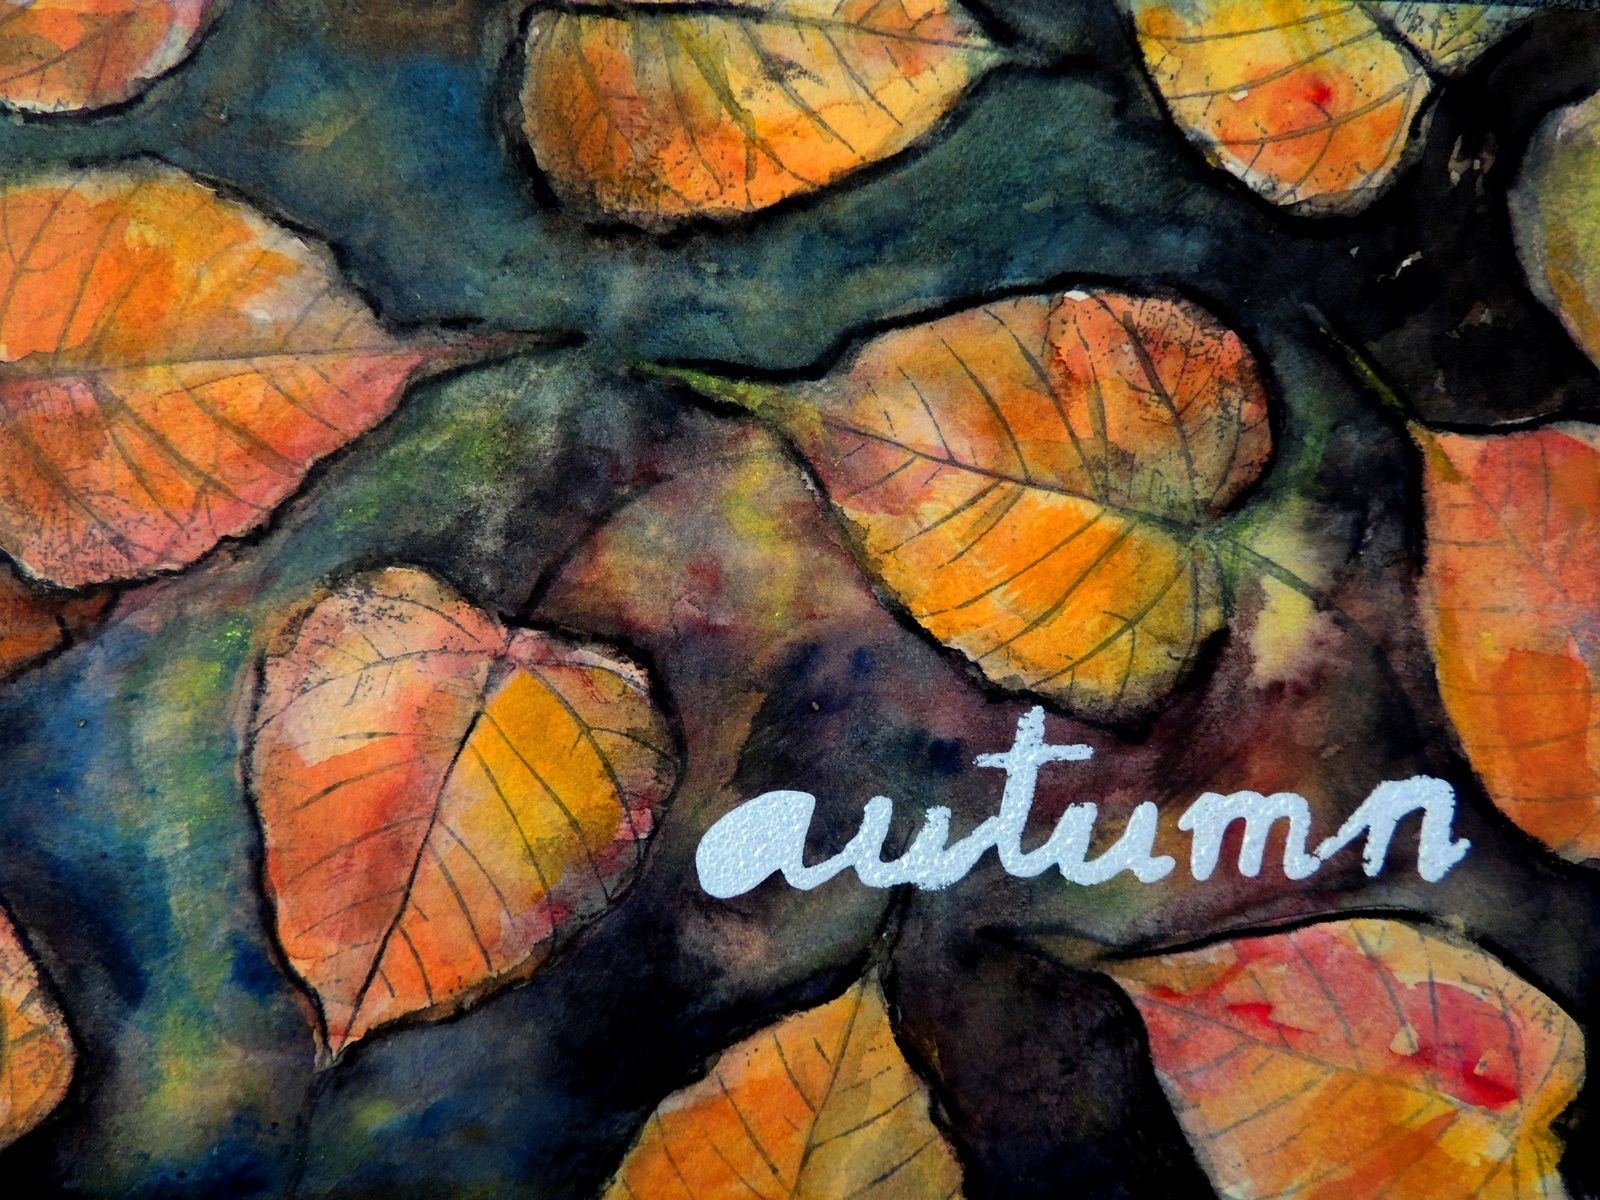 automne - season of colours